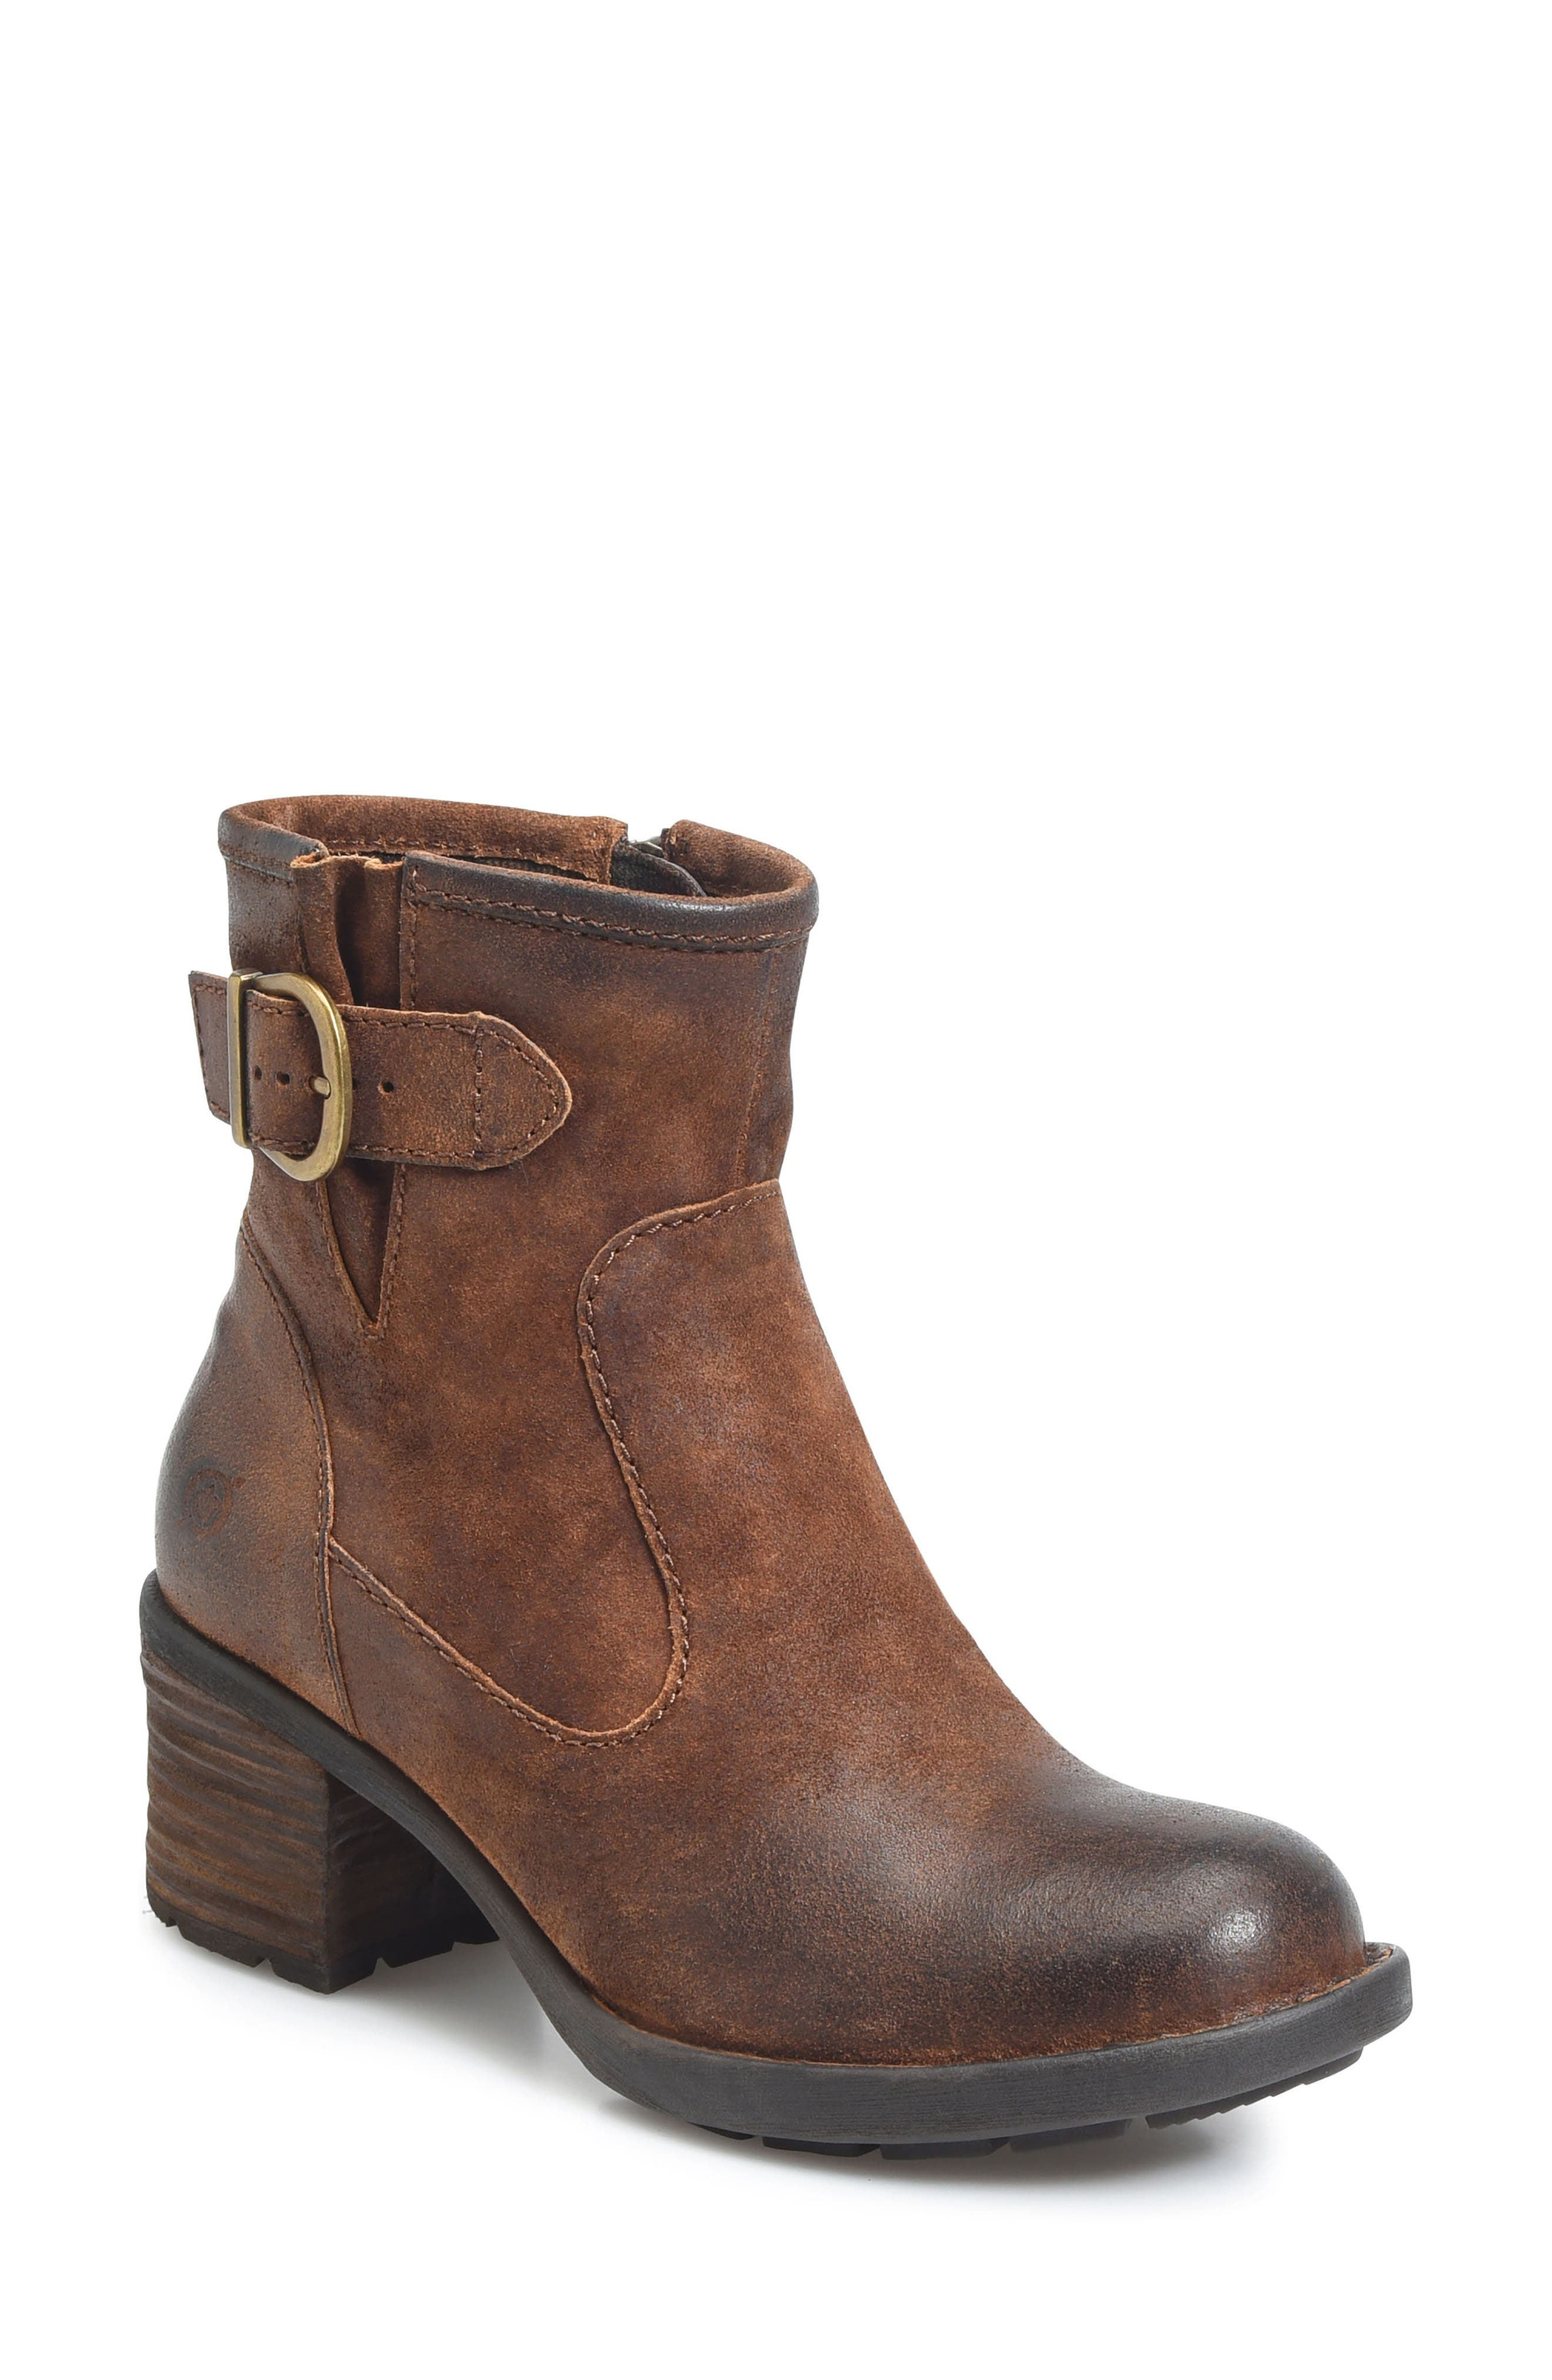 Gunn Engineer Bootie,                             Main thumbnail 1, color,                             Rust Distressed Leather